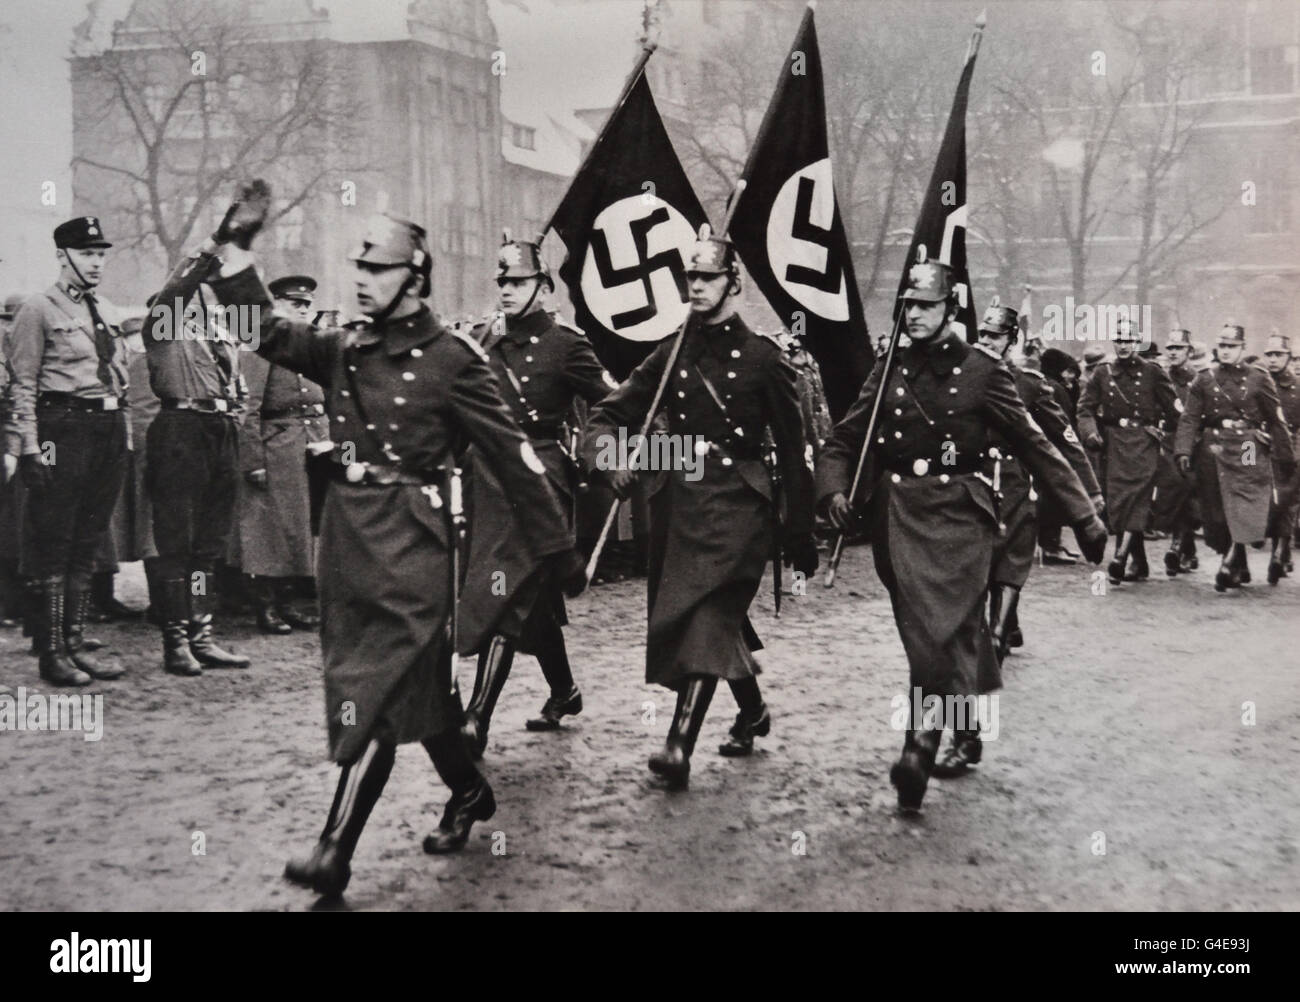 Berlin police detachment march at a Nazi Part rally March 1933 (  Topographie of Terror historical museum on site - Stock Image